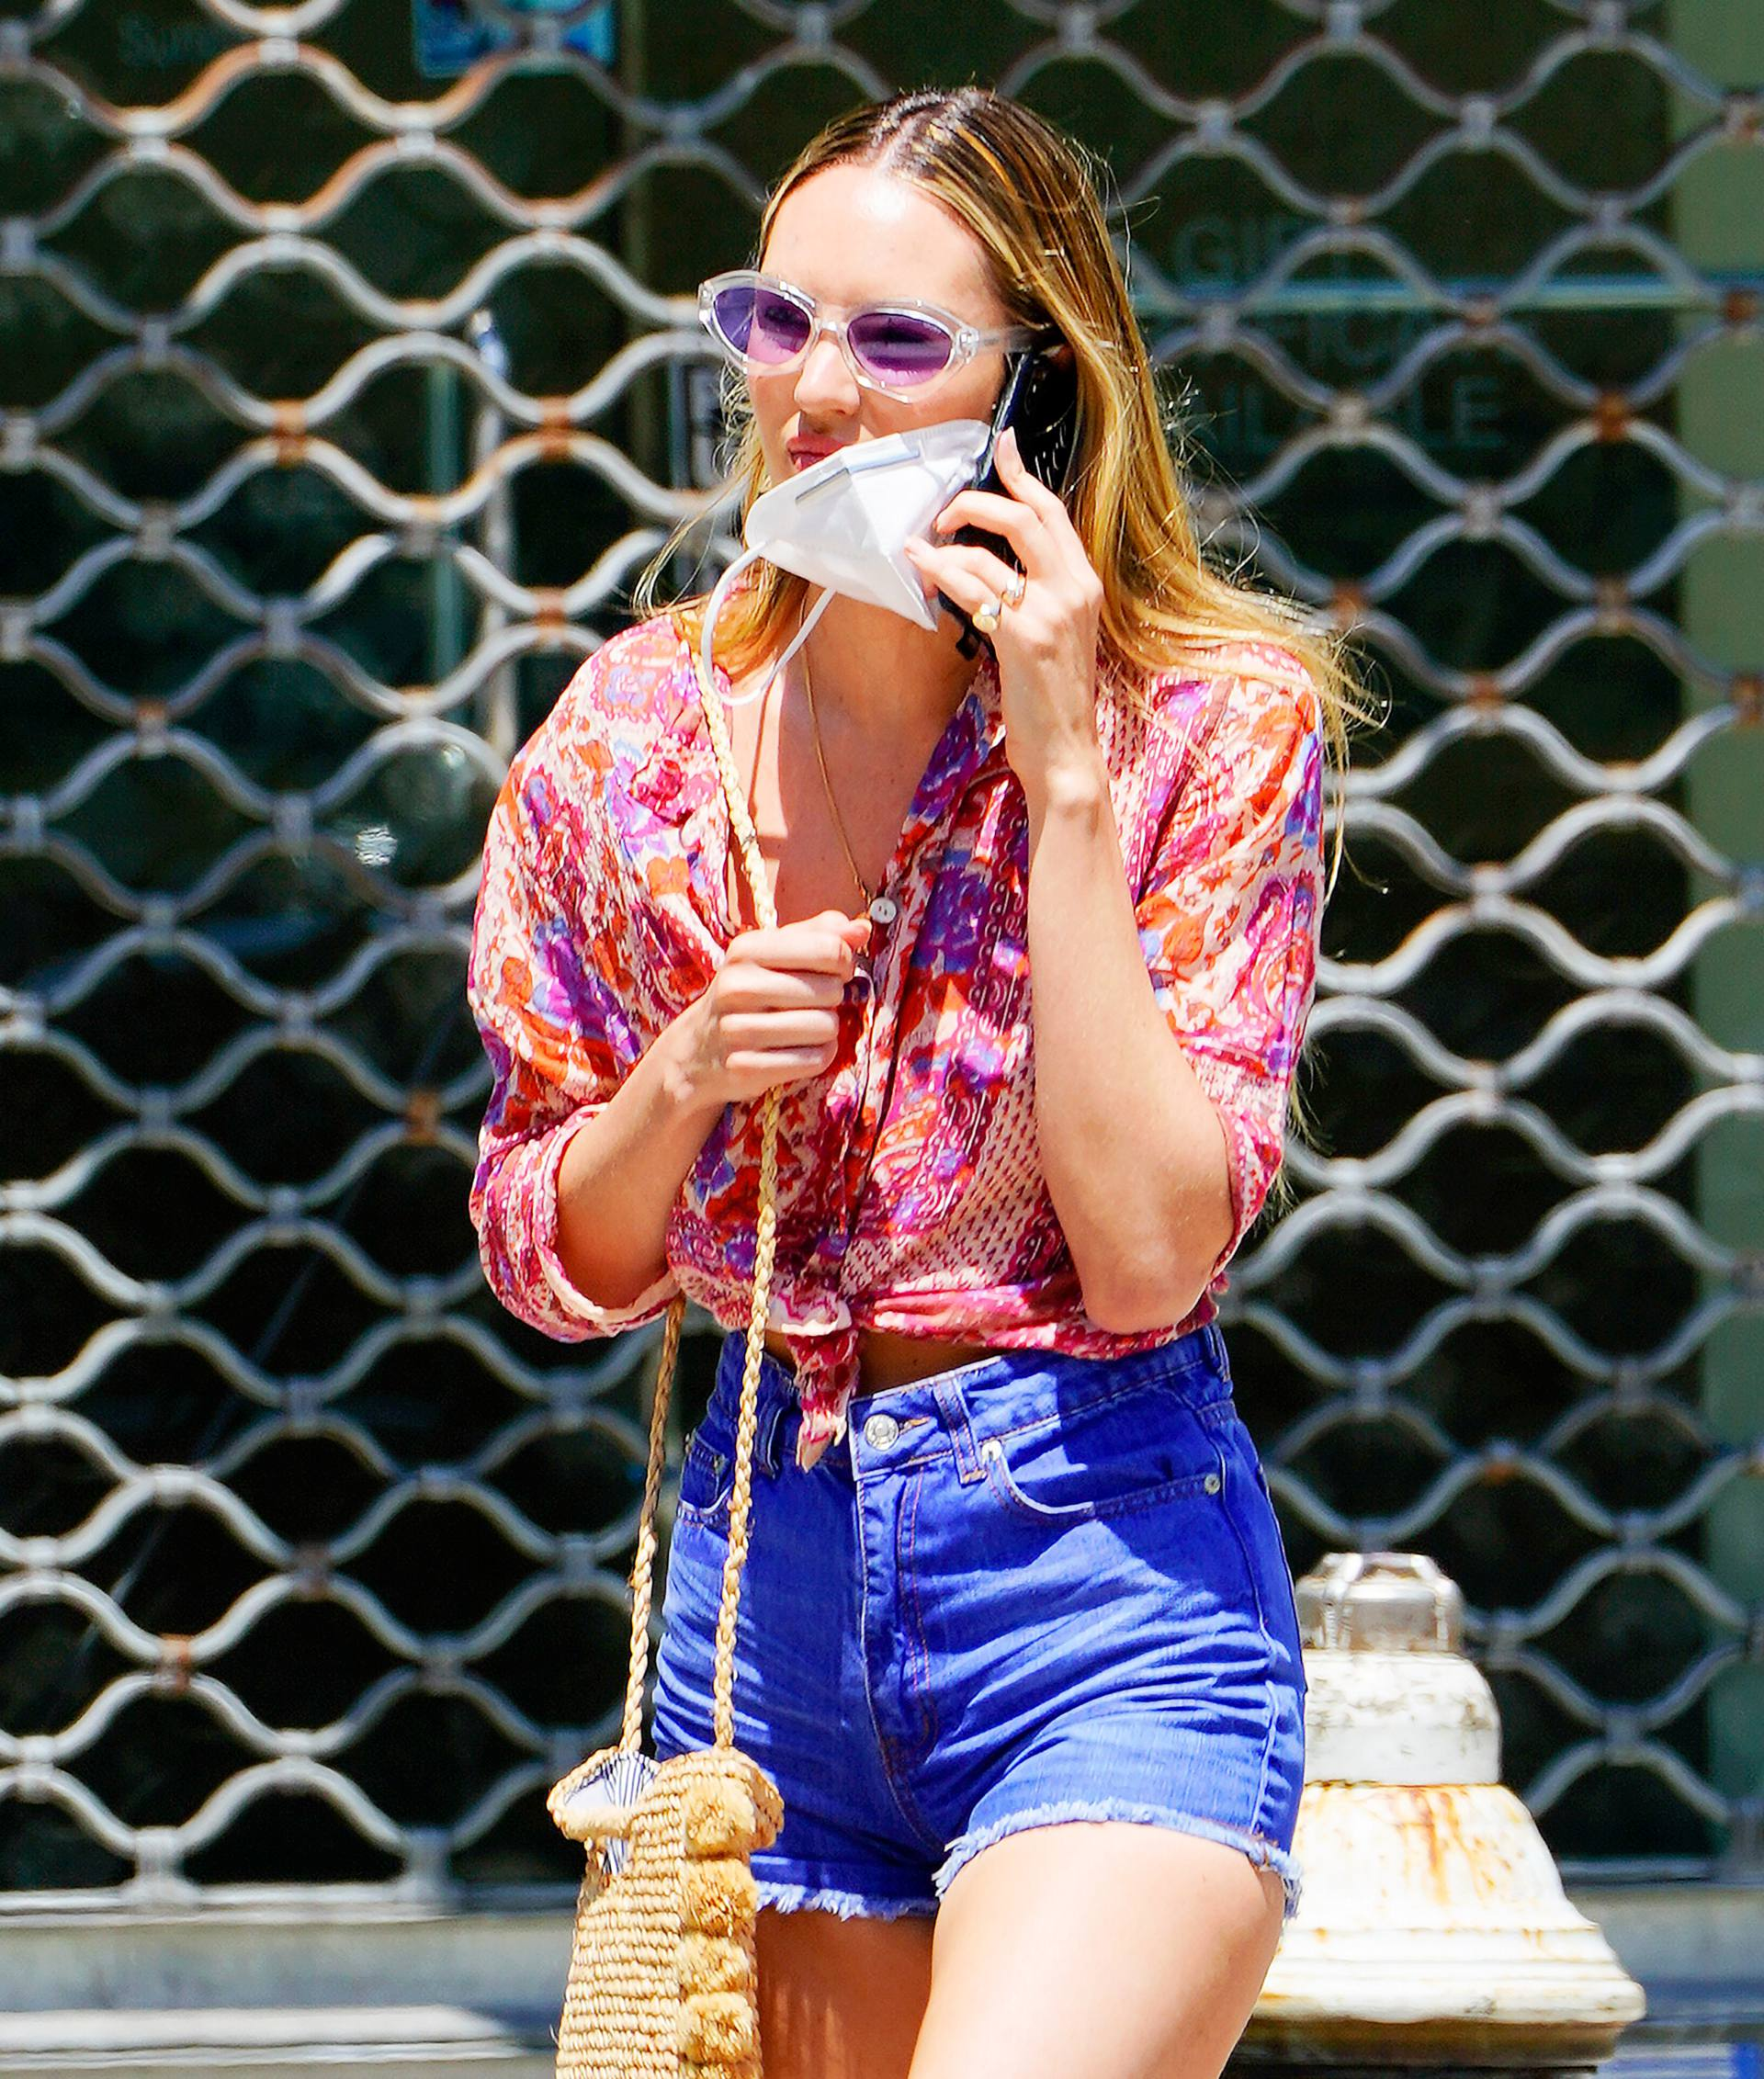 Candice Swanepoel Sexy In Shorts